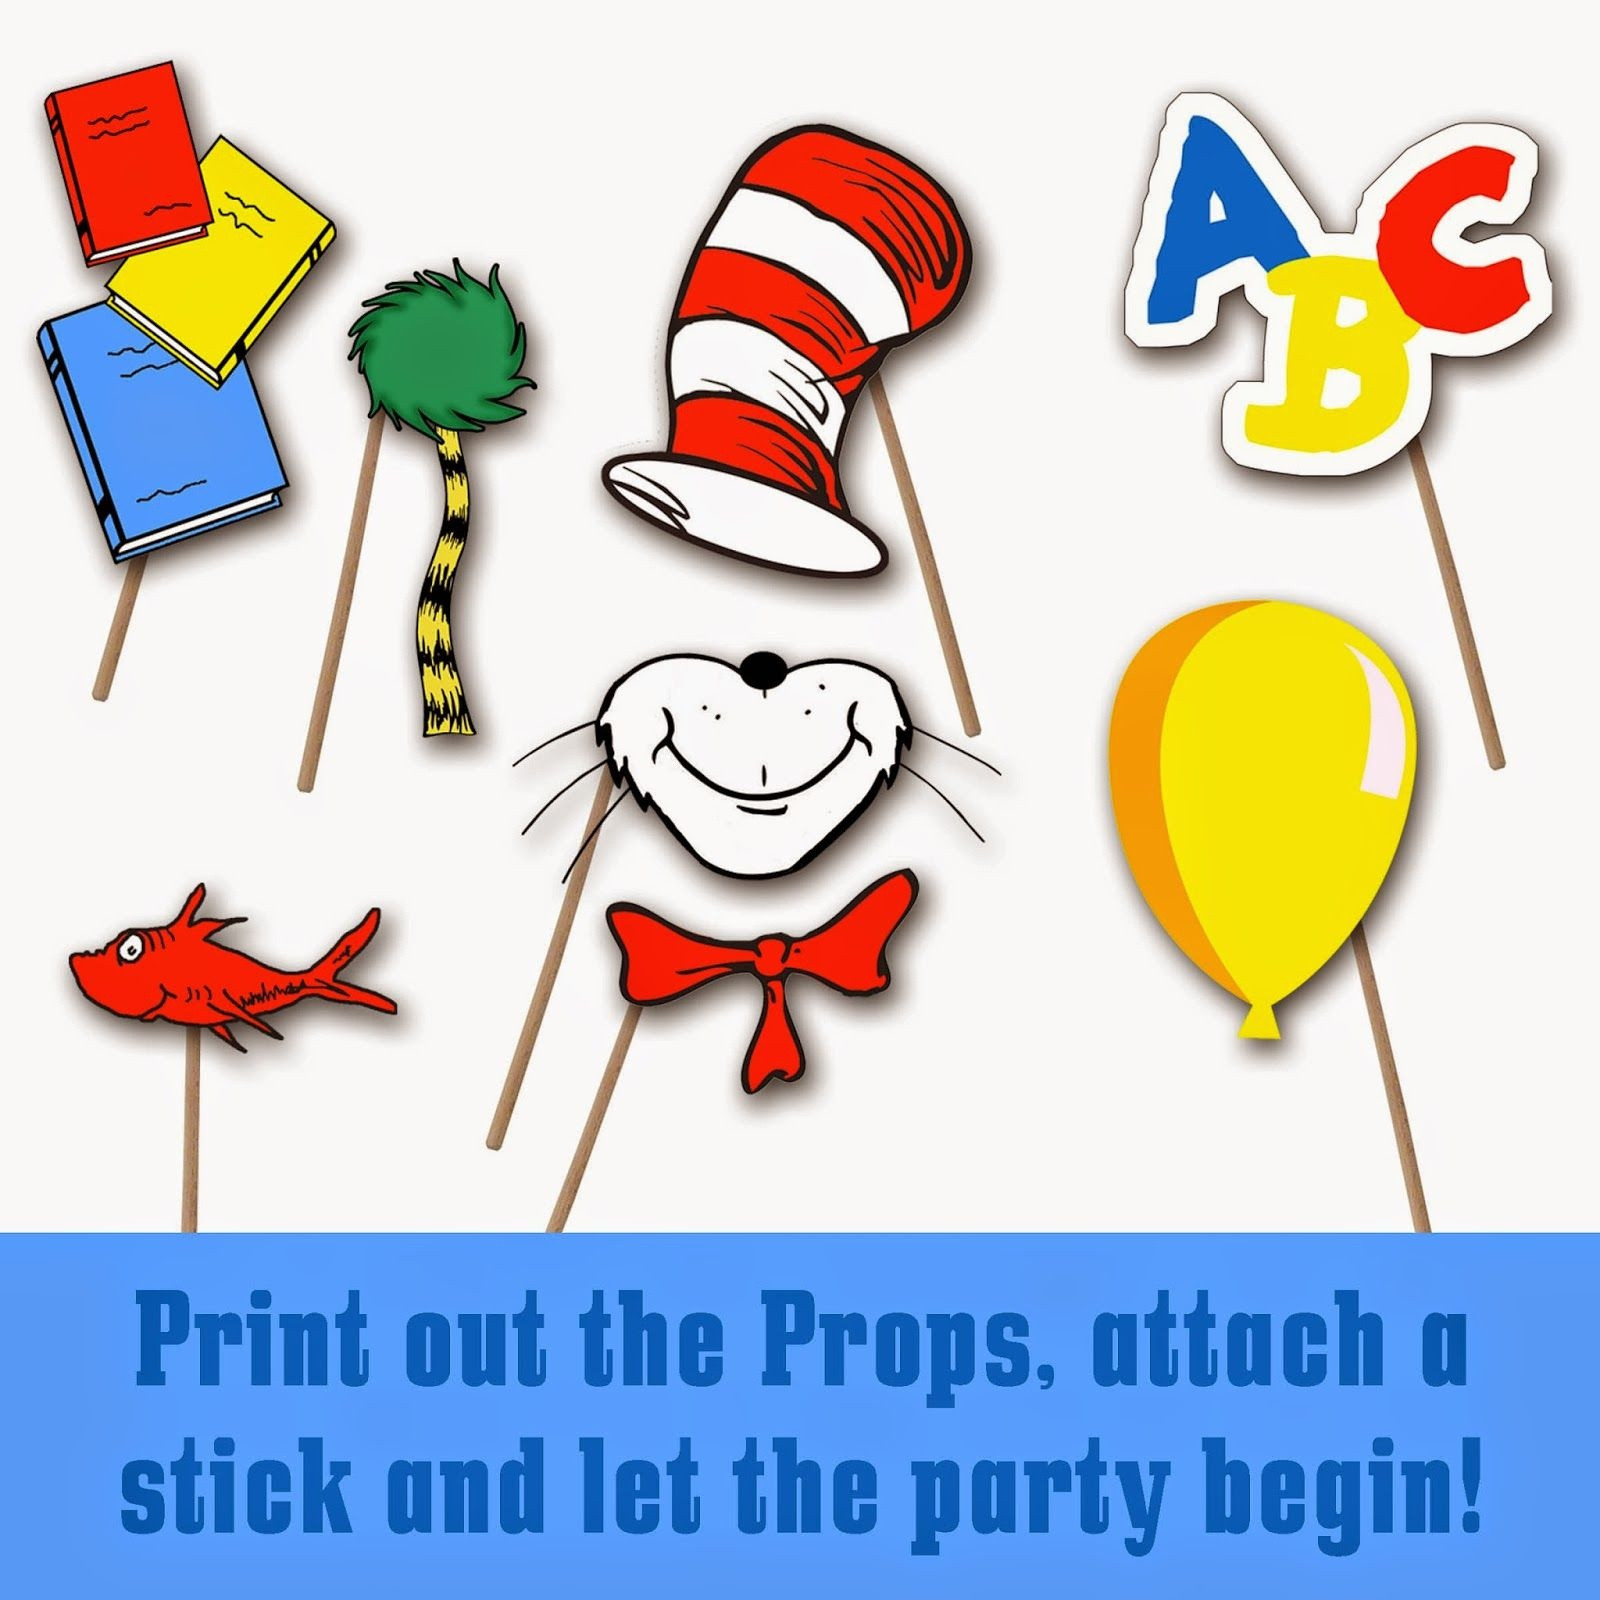 Dr. Seuss Photo Booth Printable Props   School-Dr. Seuss - Free Printable Dr Seuss Photo Props